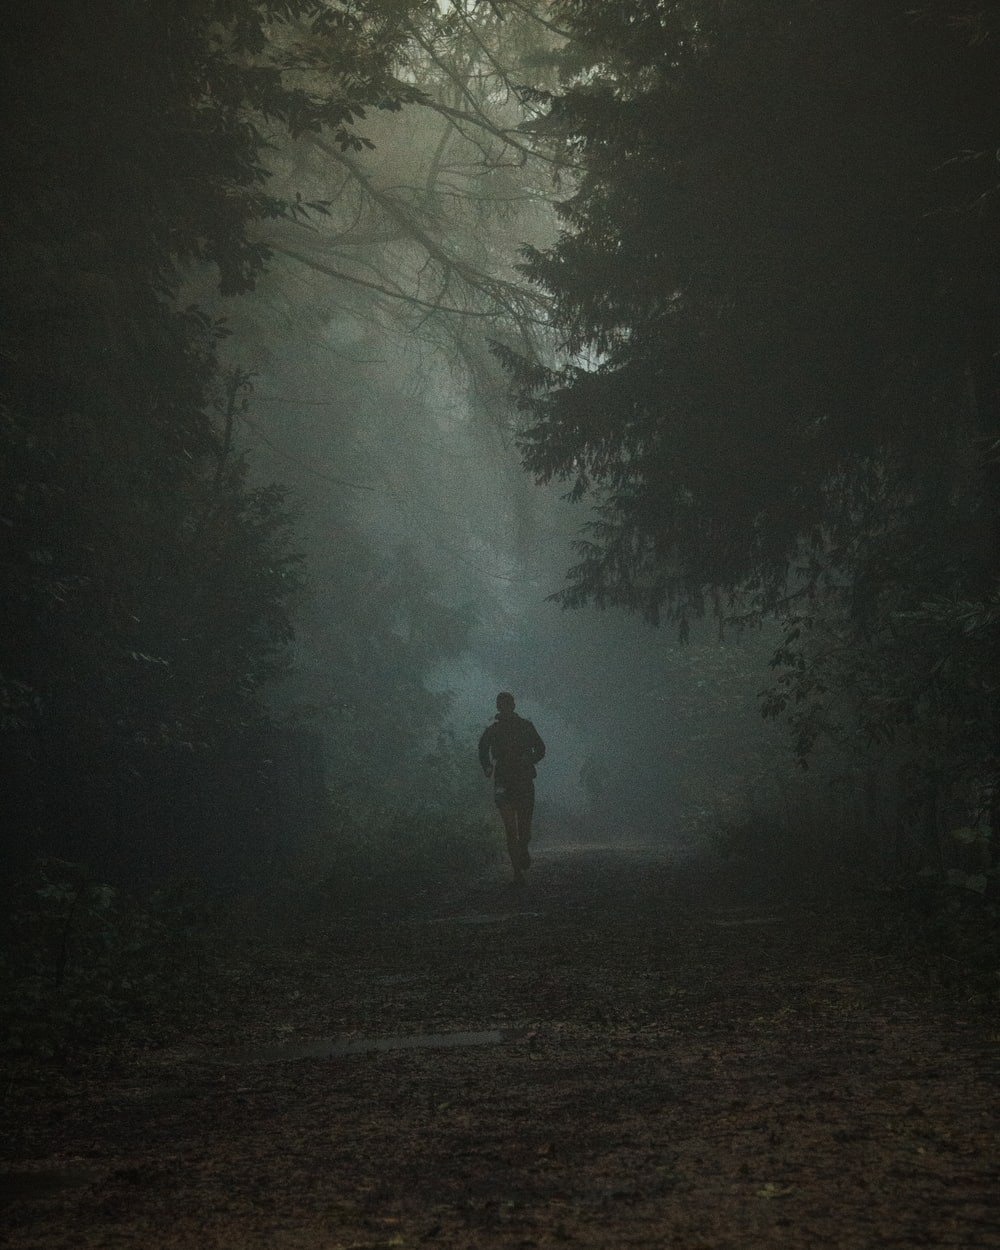 person in black jacket walking on forest